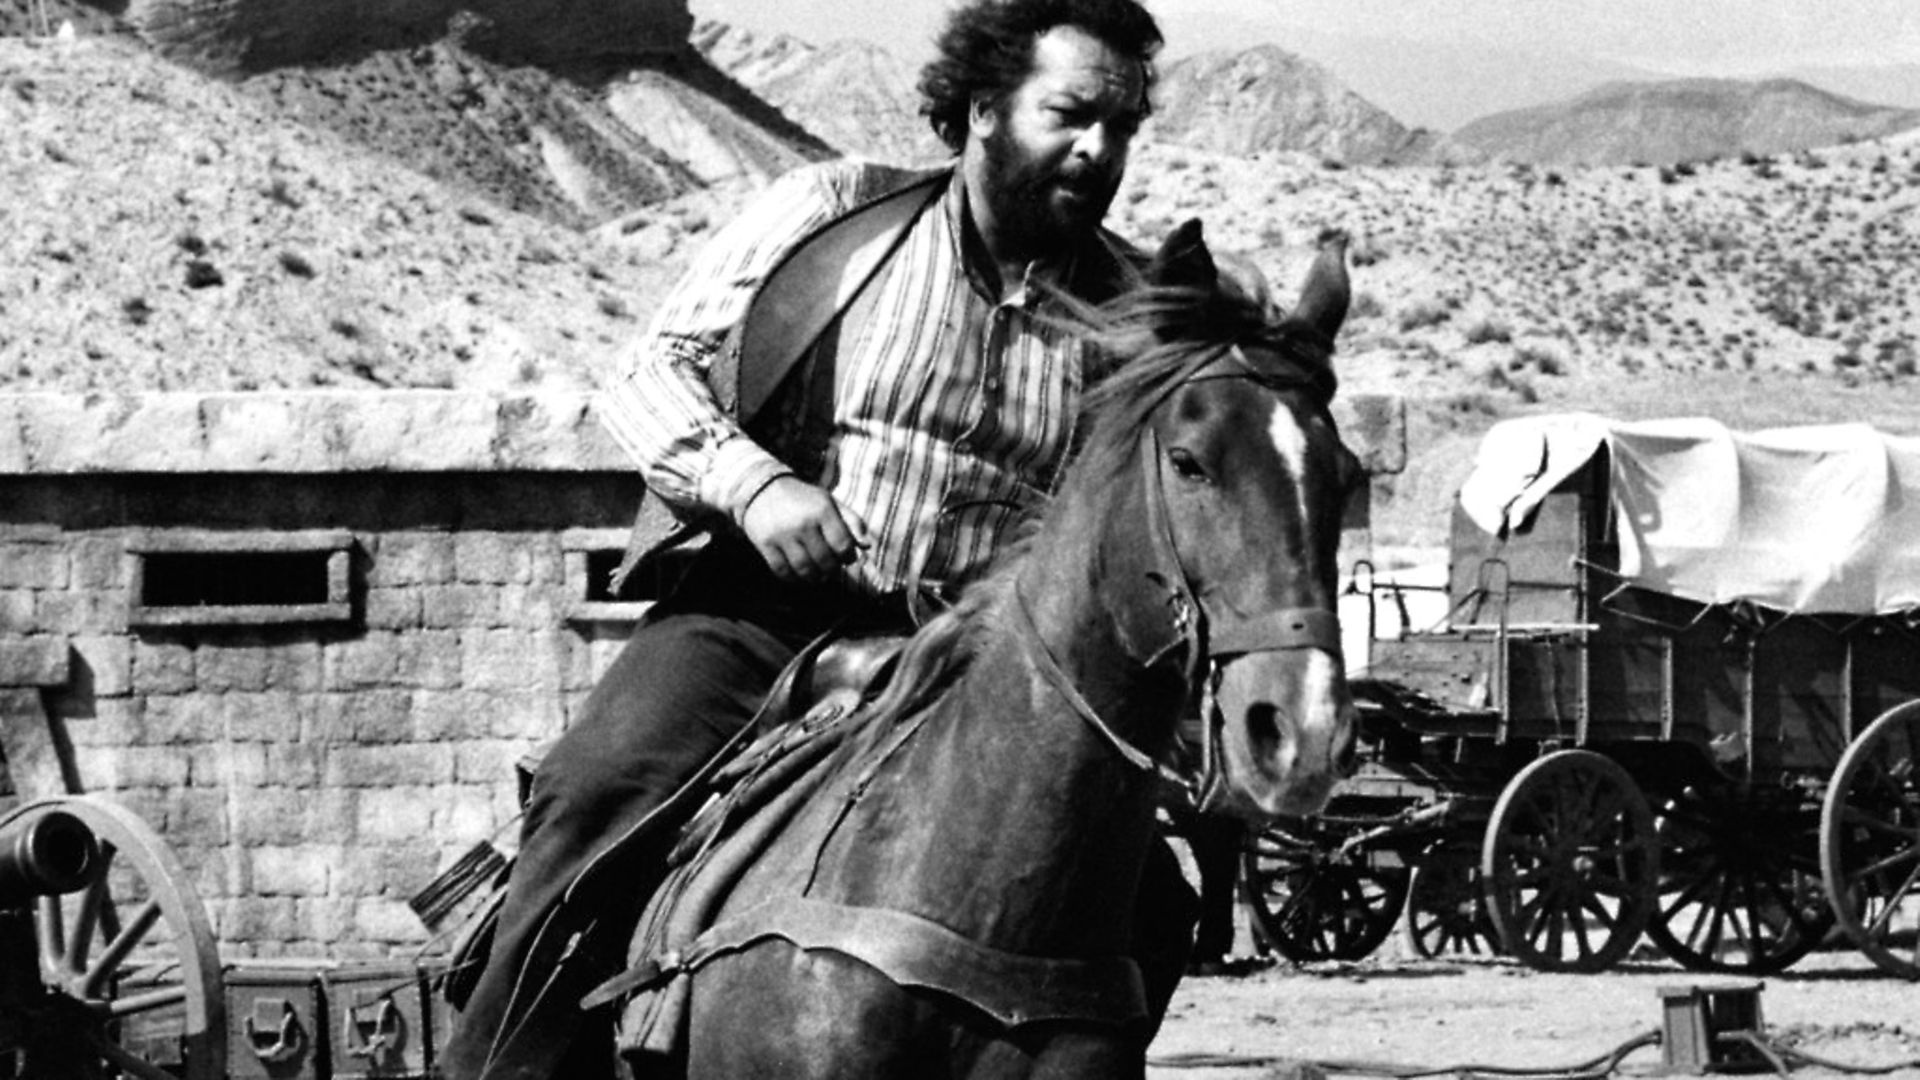 Italian actor and swimmer Bud Spencer (Carlo Pedersoli) riding a horse in the film A Reason to Live. 1972 (Photo by Mondadori Portfolio by Getty Images) - Credit: Mondadori via Getty Images